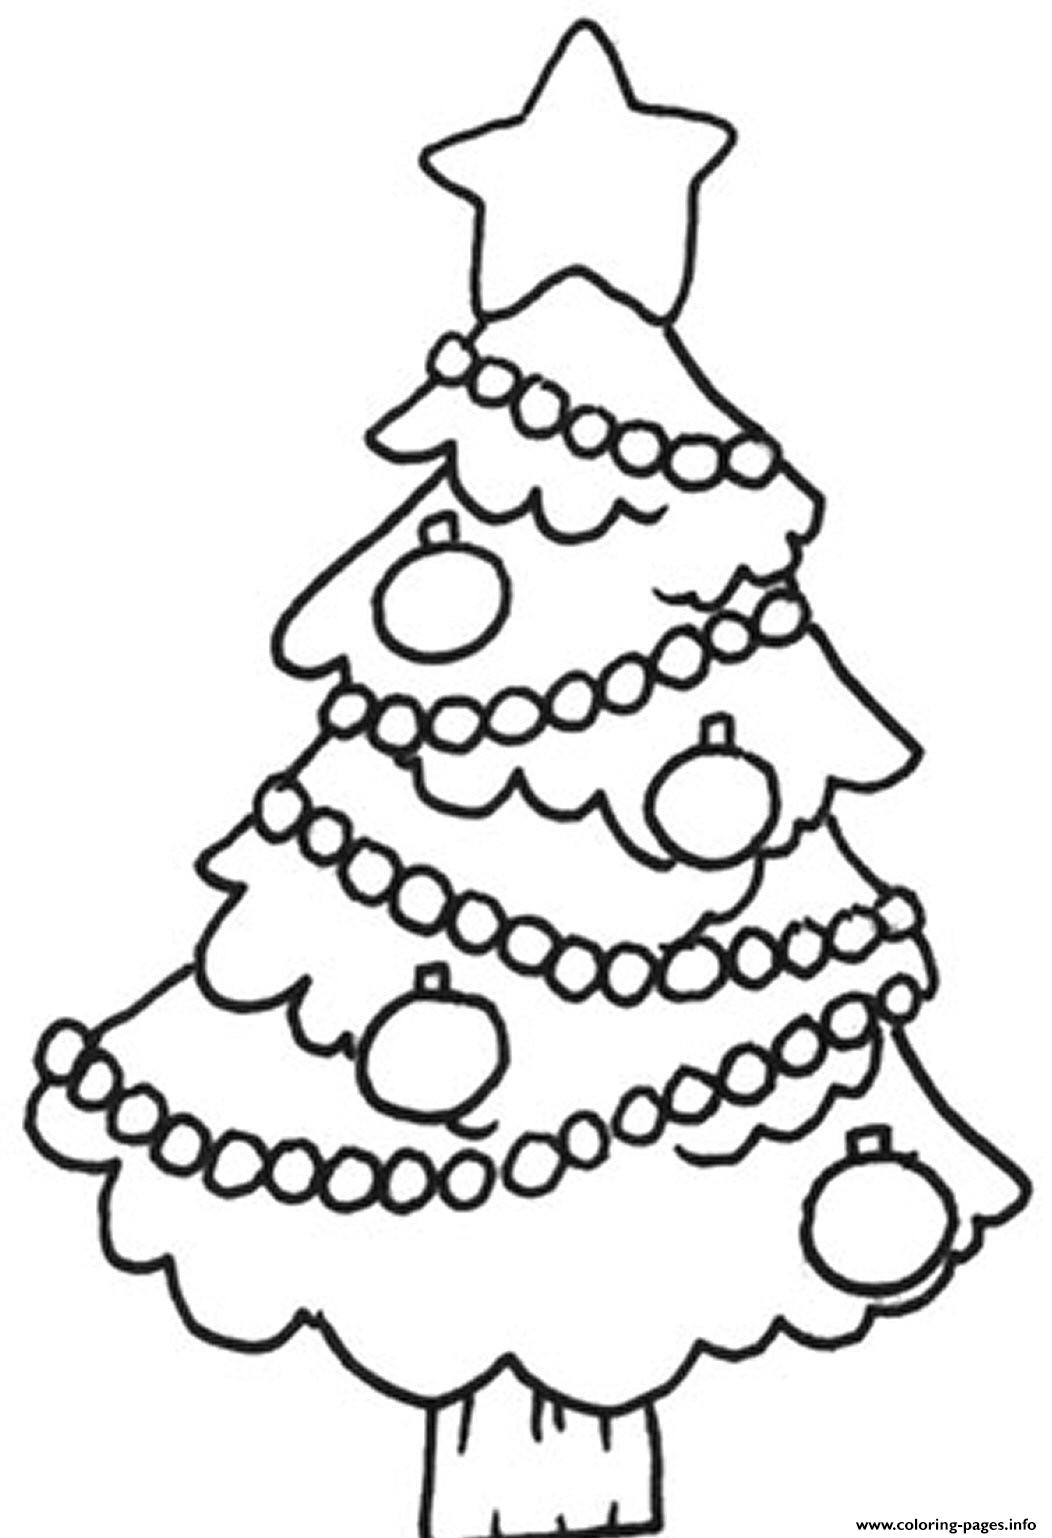 Easy Christmas Tree S For Childrenb7ca Coloring Pages Printable